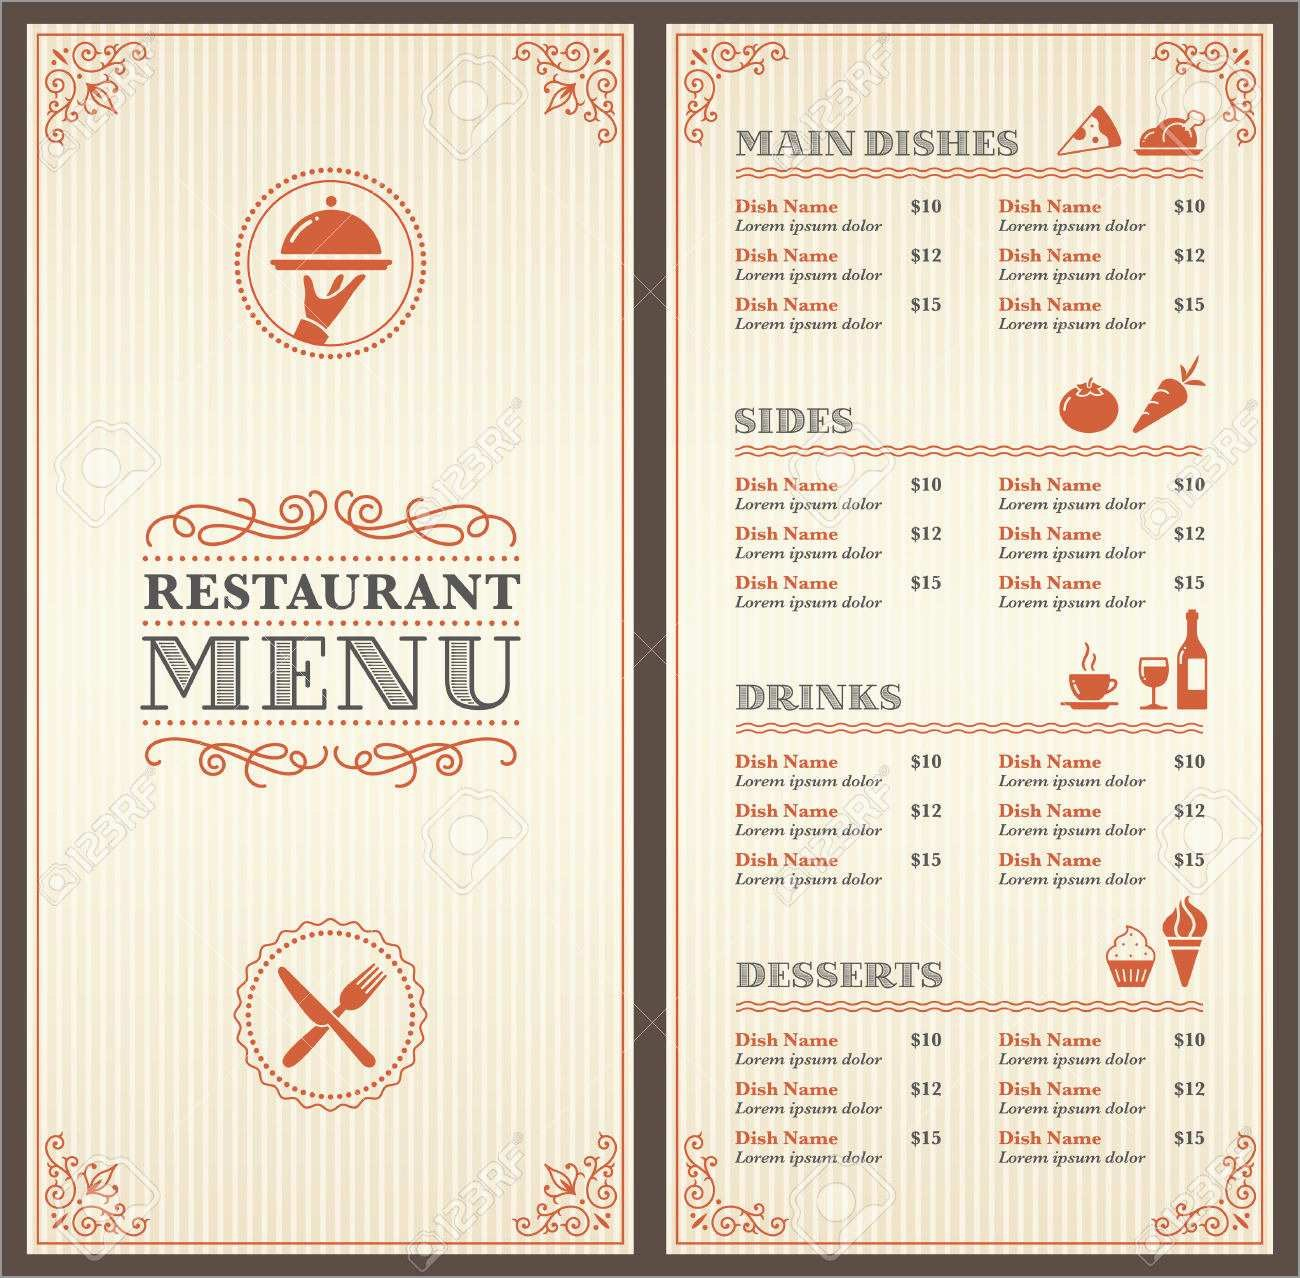 New S Diner Menu Templates Free Download  Best Of Template With Regard To 50S Diner Menu Template